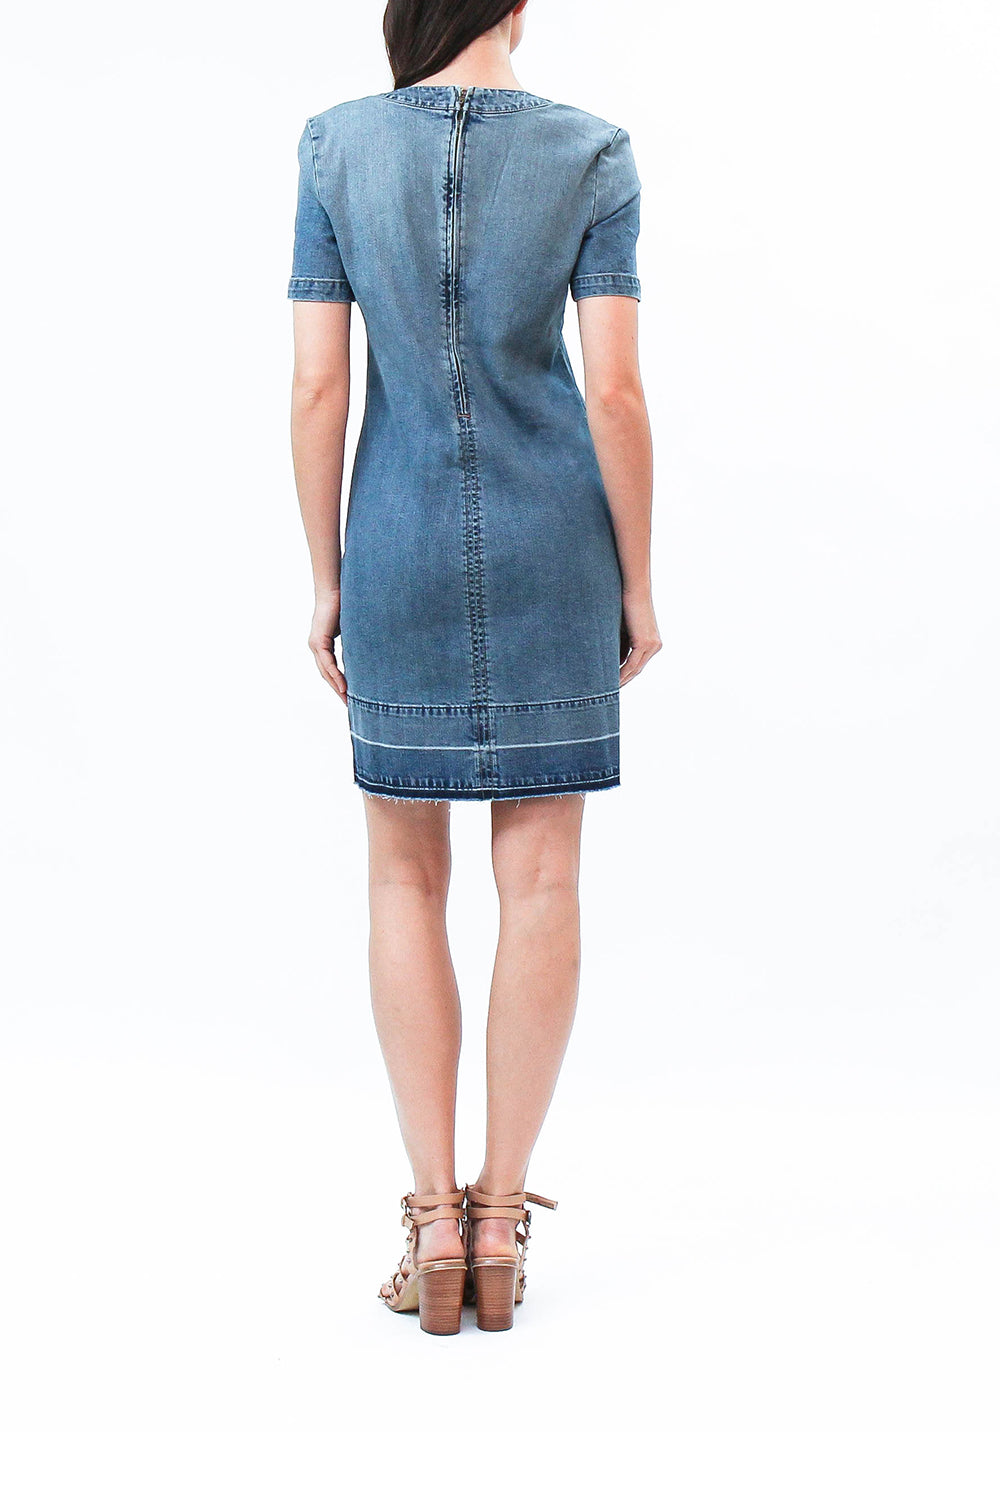 a662401f0e5 Katie Dres · Denim Dress